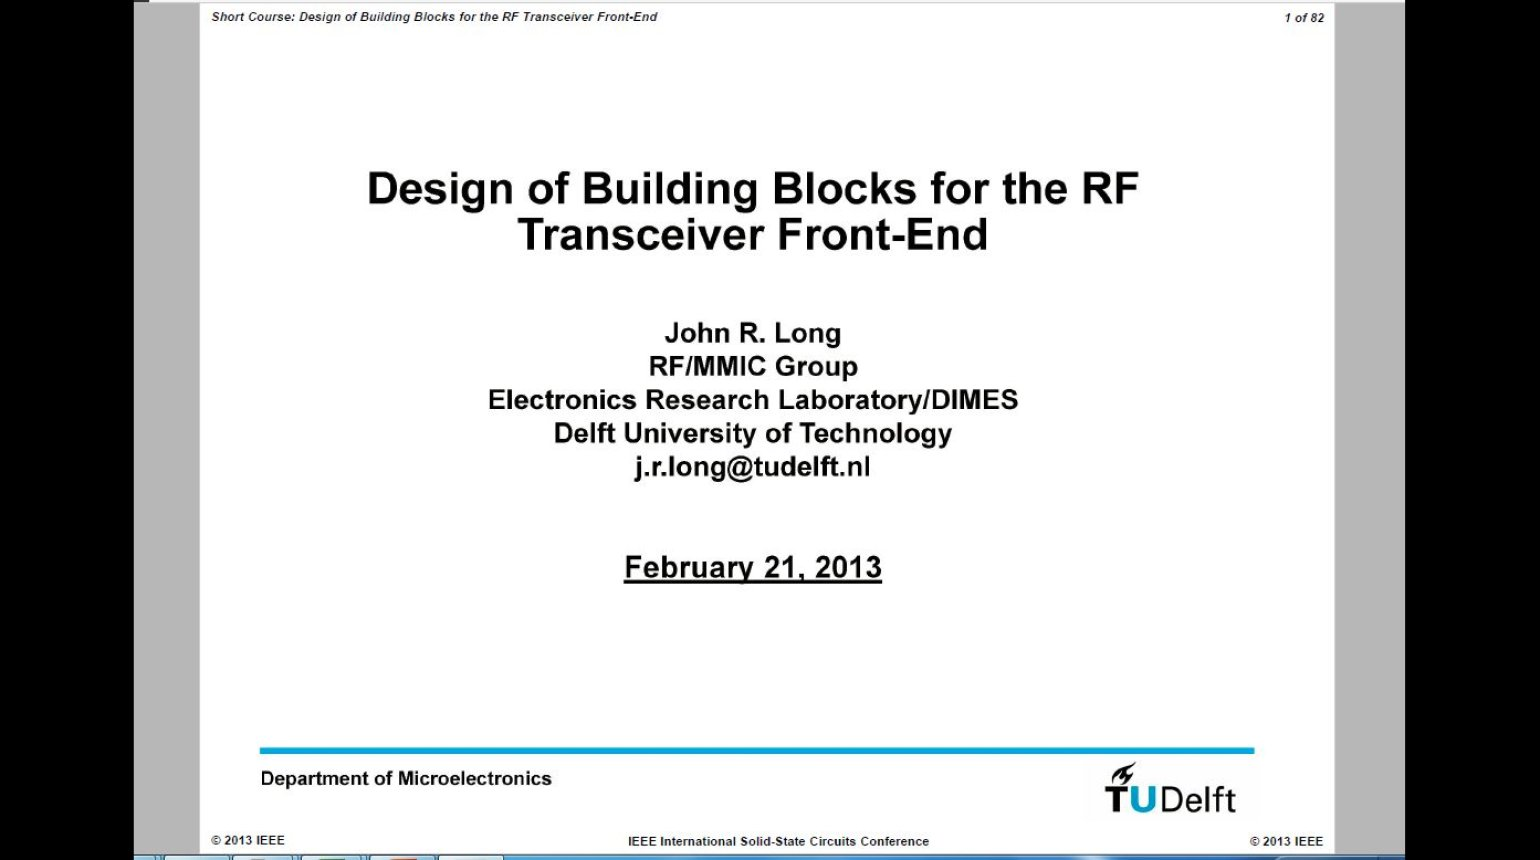 Design of Building Blocks for the RF Transceiver Front End Video